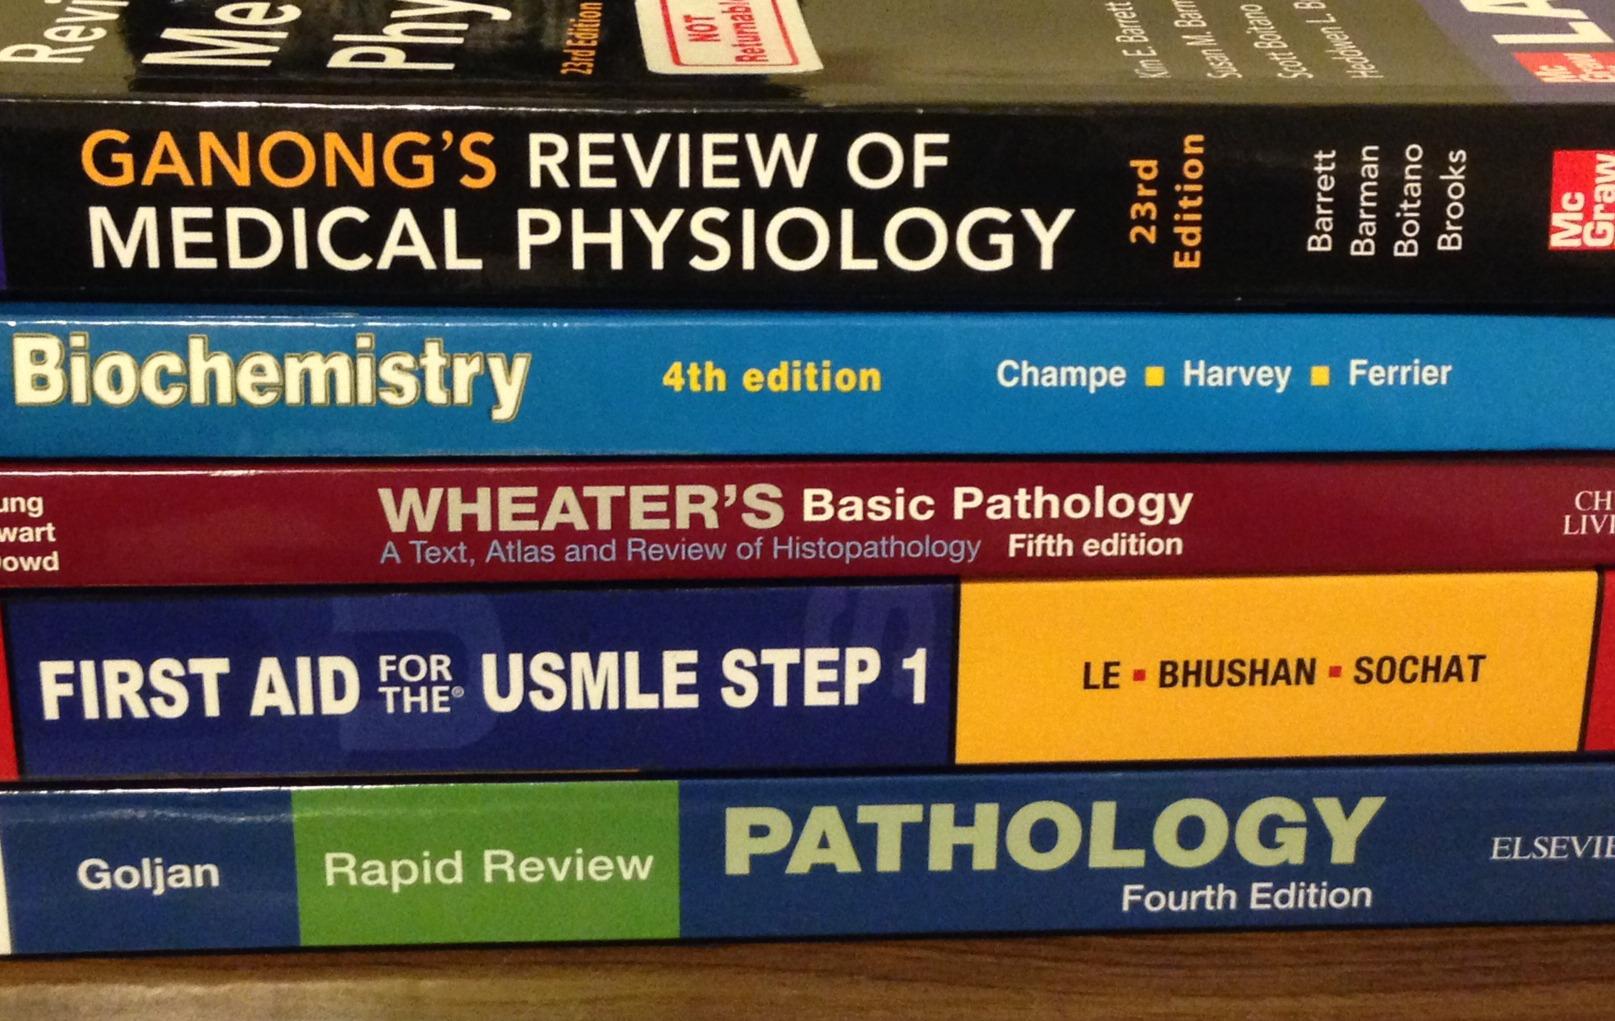 A collection of medical books from a medical student